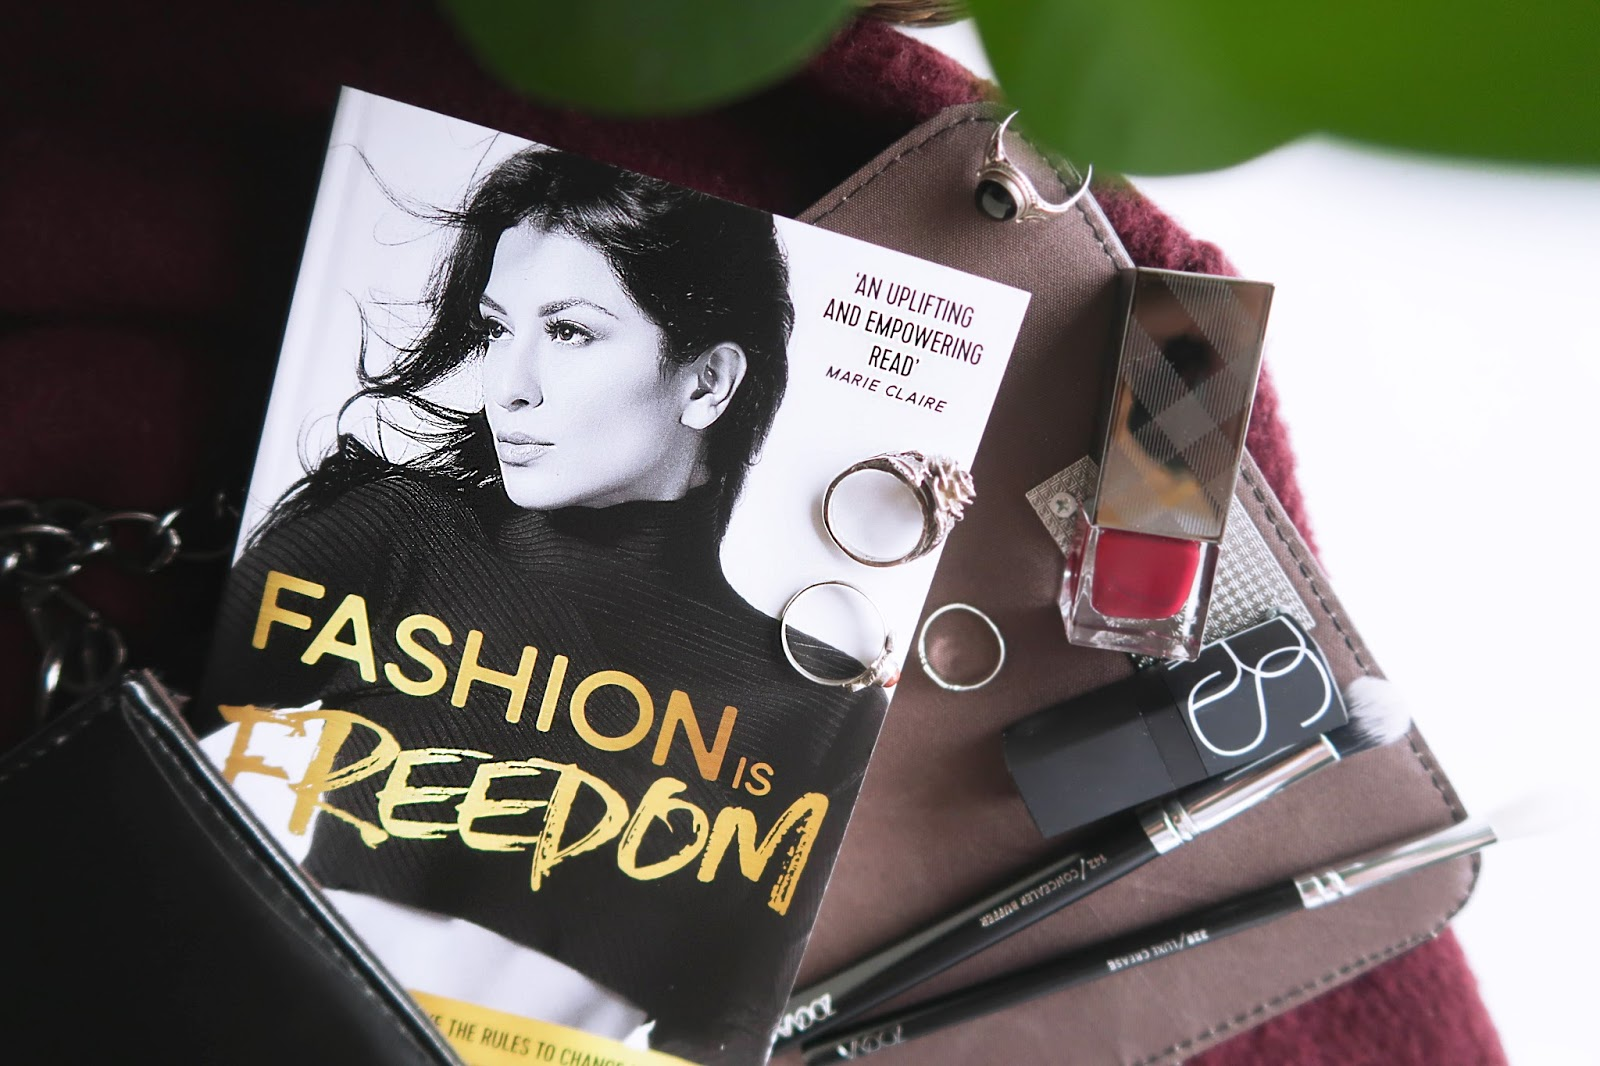 Fashion is Freedom book review